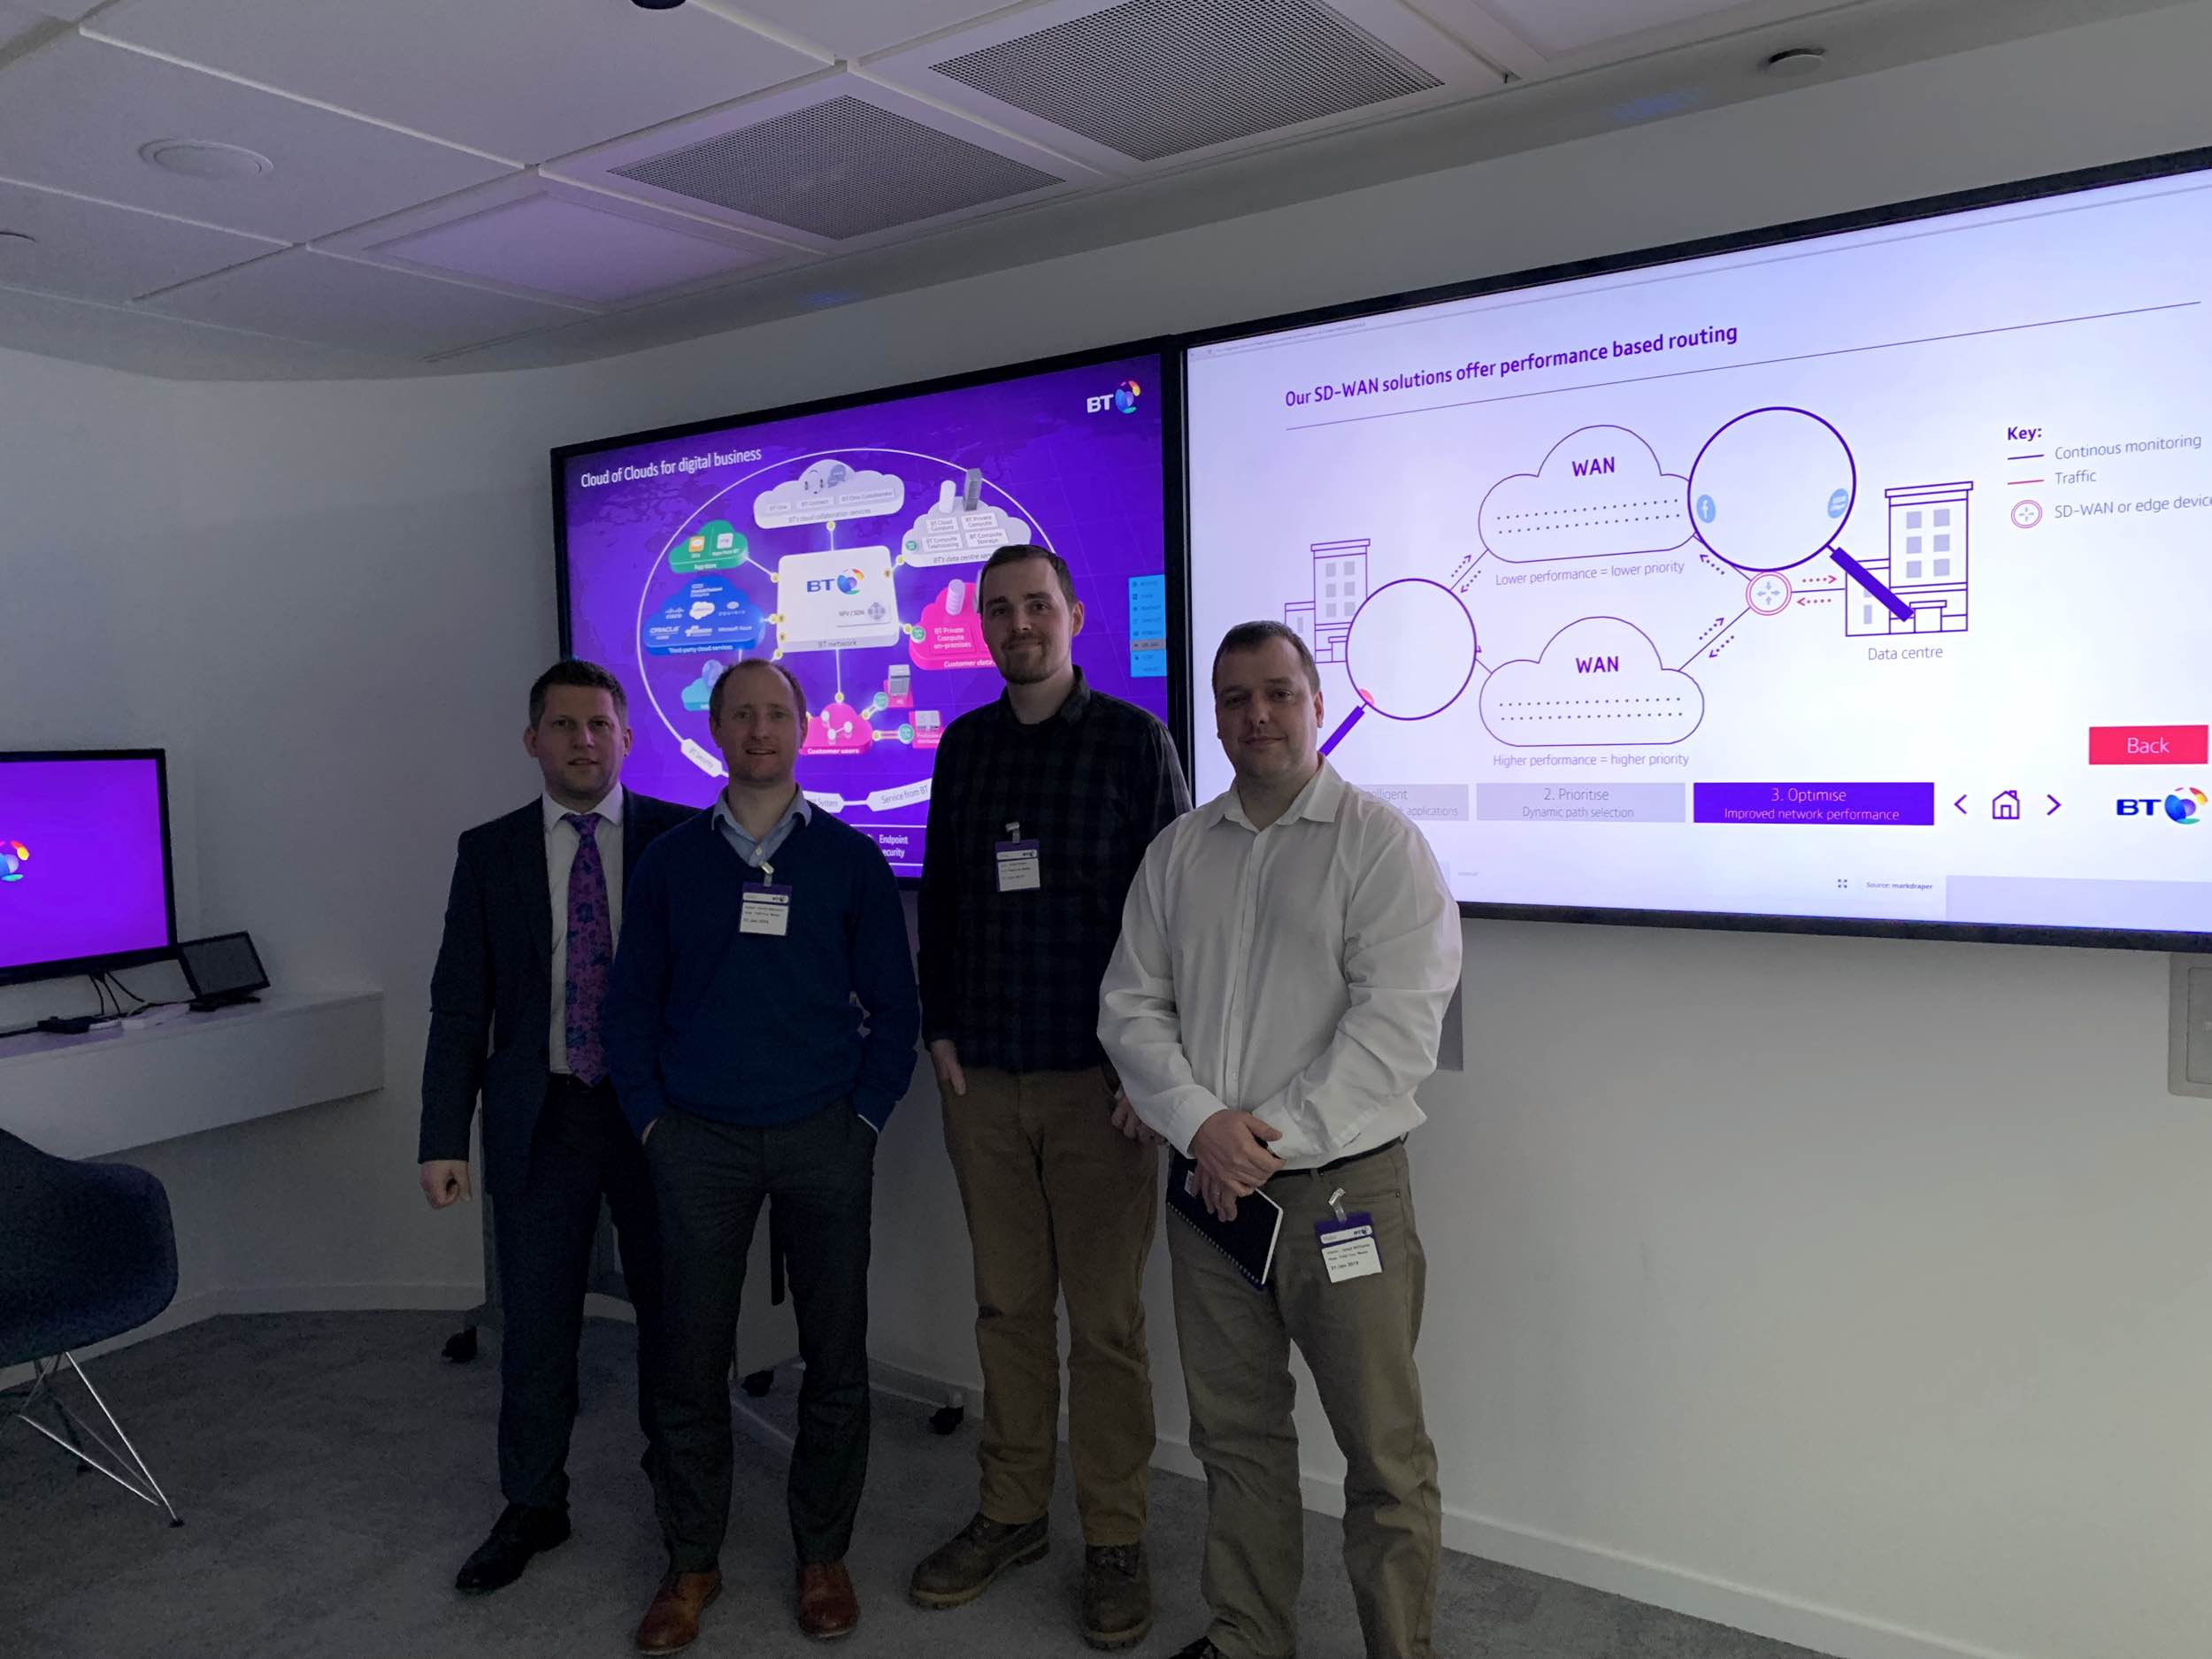 BT MPLS Customer Reference Workshop